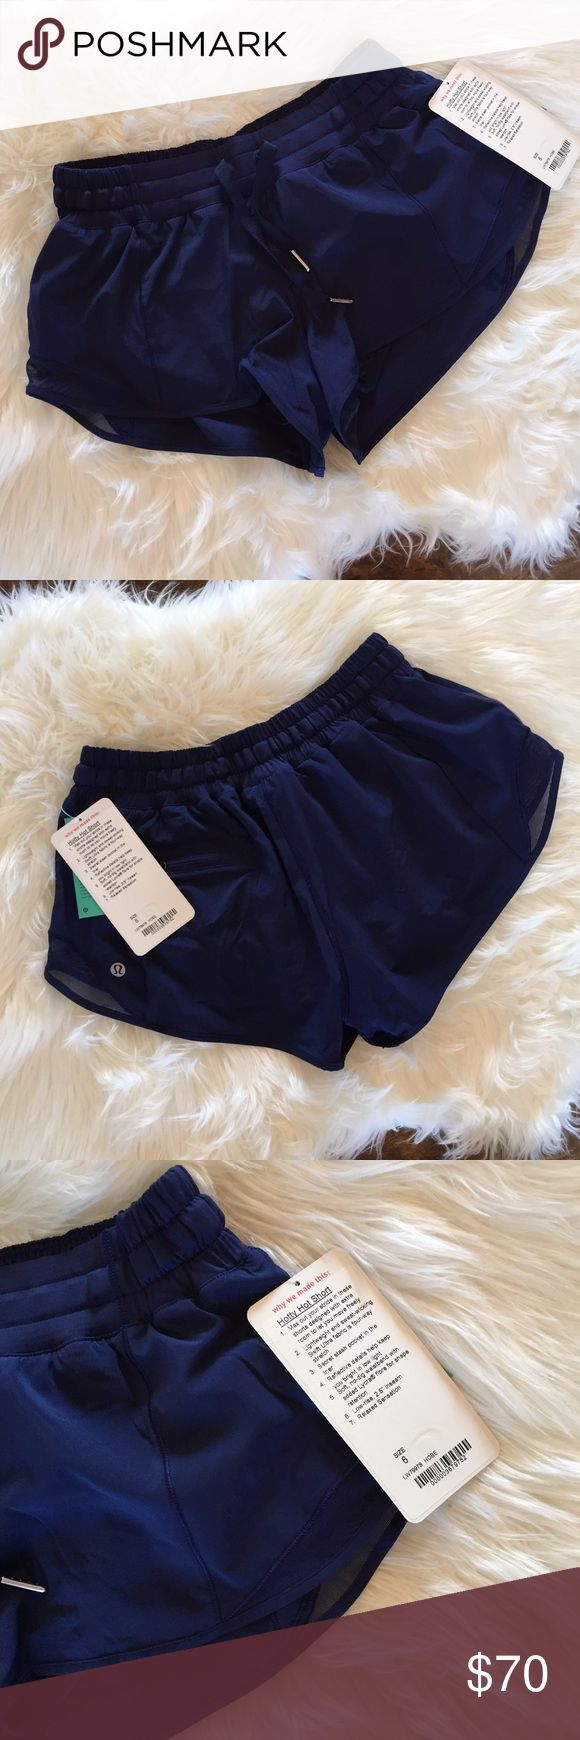 Lululemon Hotty Hot Short Lululemon Hotty Hot Short. Size 6, new with tags!! Hero Blue. No trades. If you like something, please use the offer button, I may not respond to offers in comments. I play by Posh's rules. Bundle for UP TO a 25% discount as well as saving on your shipping! Play nice and happy shopping! lululemon athletica Shorts